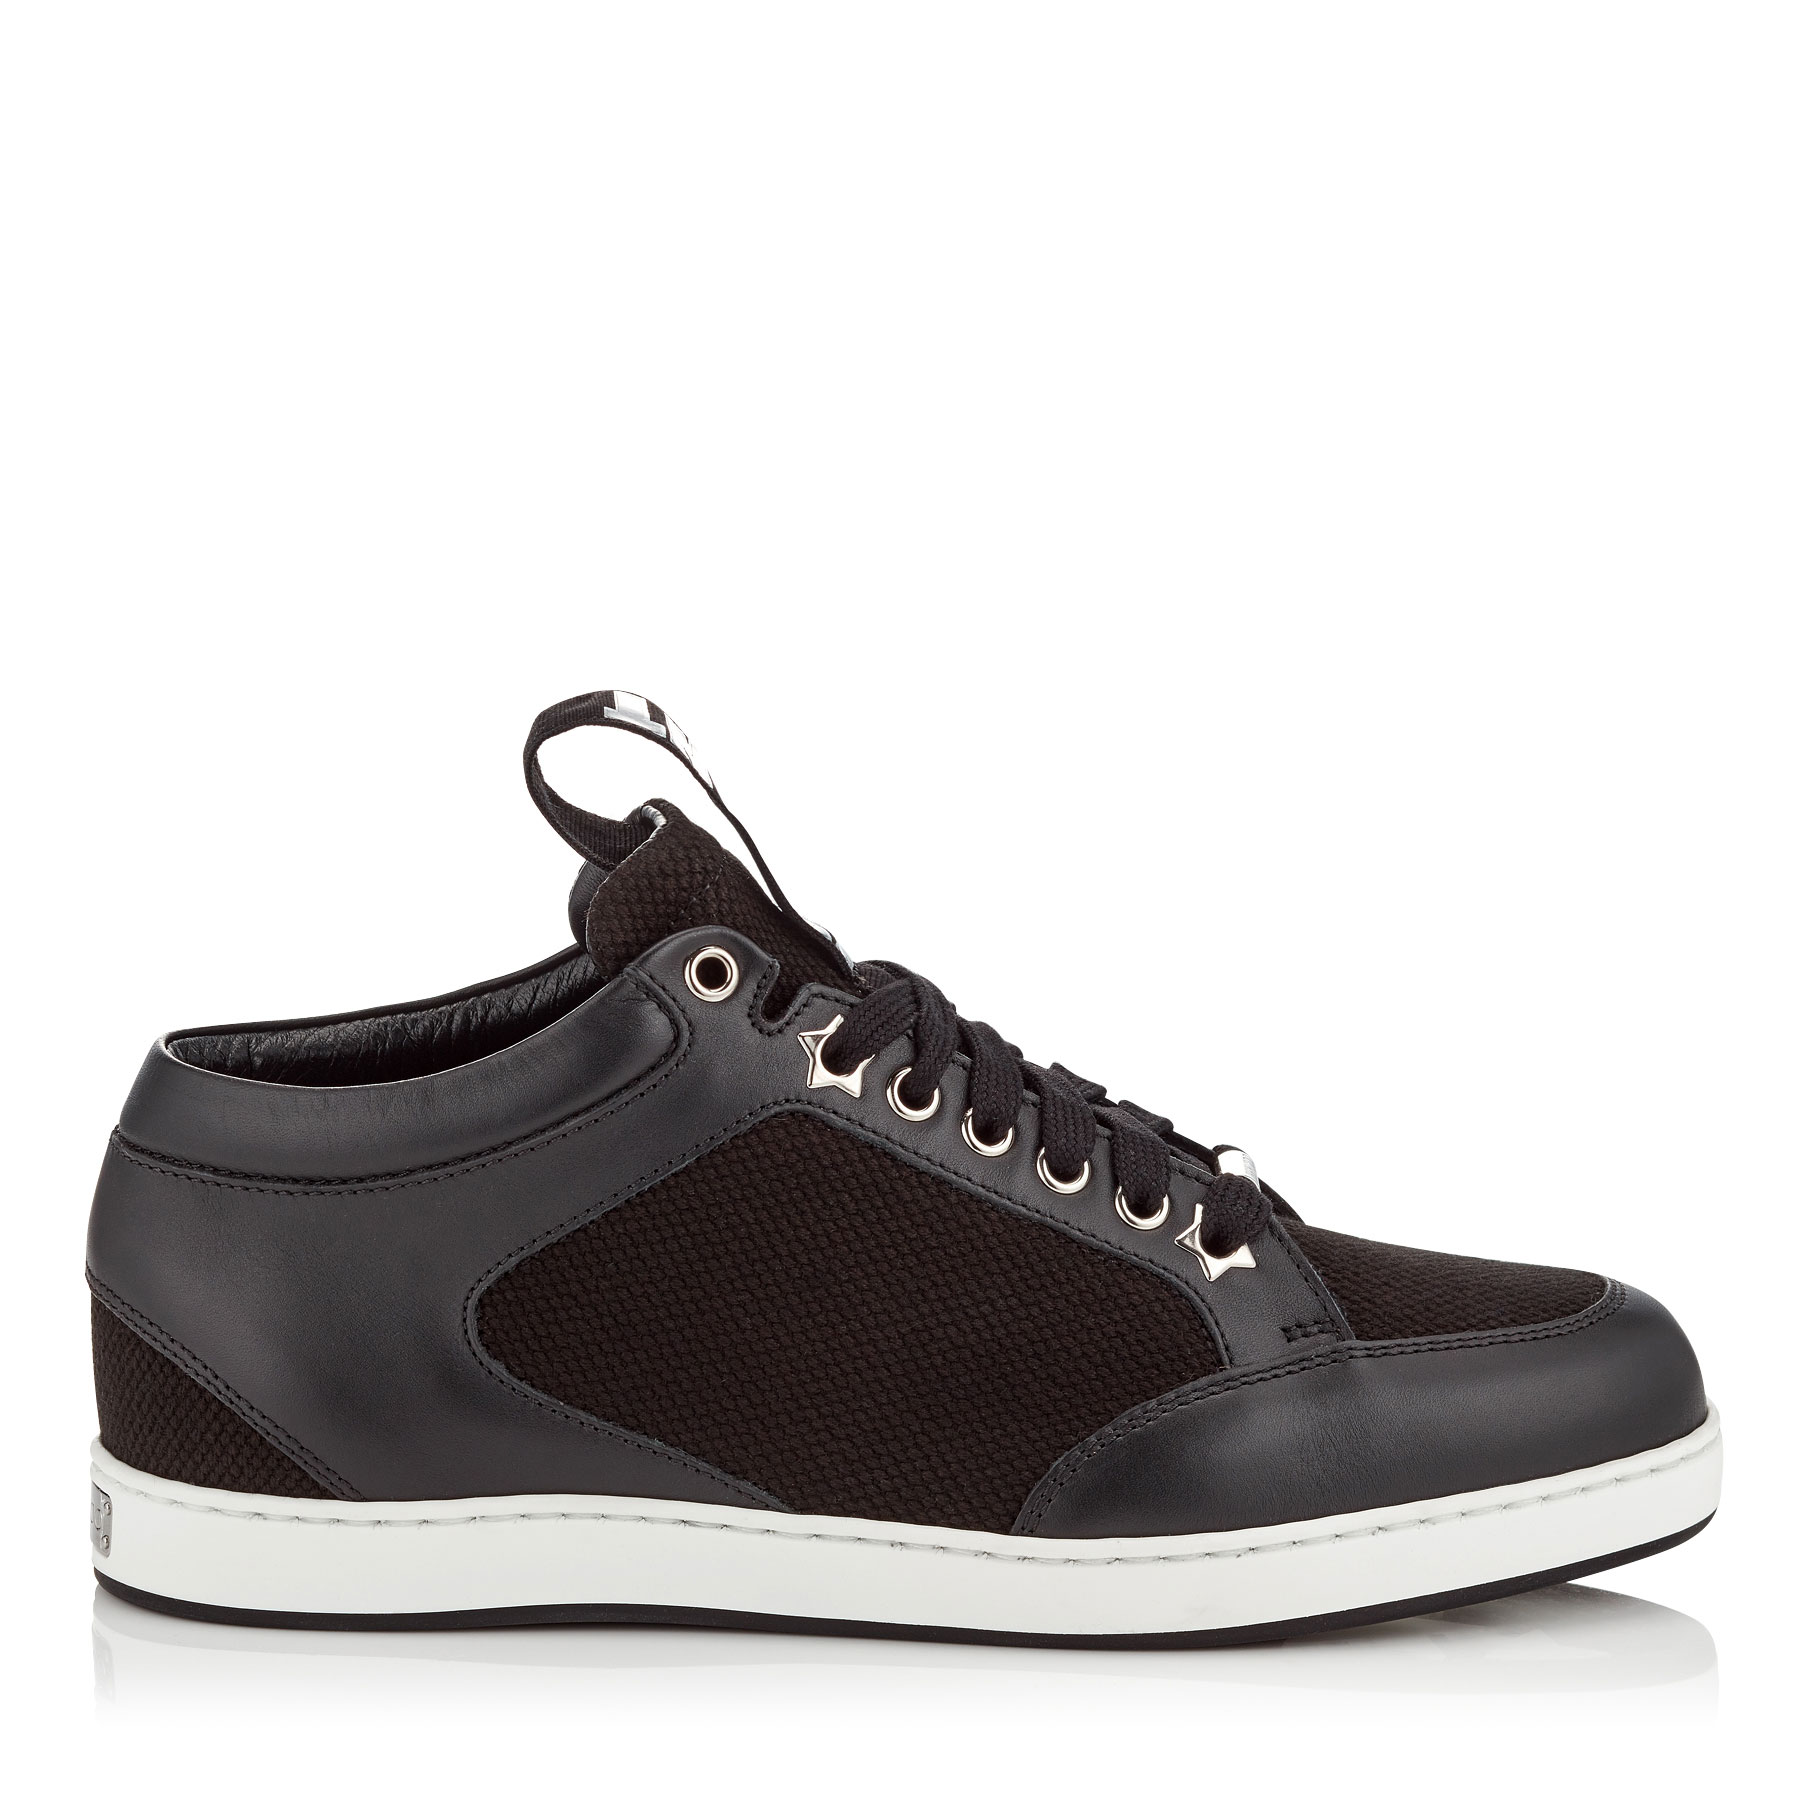 MIAMI Black Canvas and Leather Sneakers with Logo Pull by Jimmy Choo